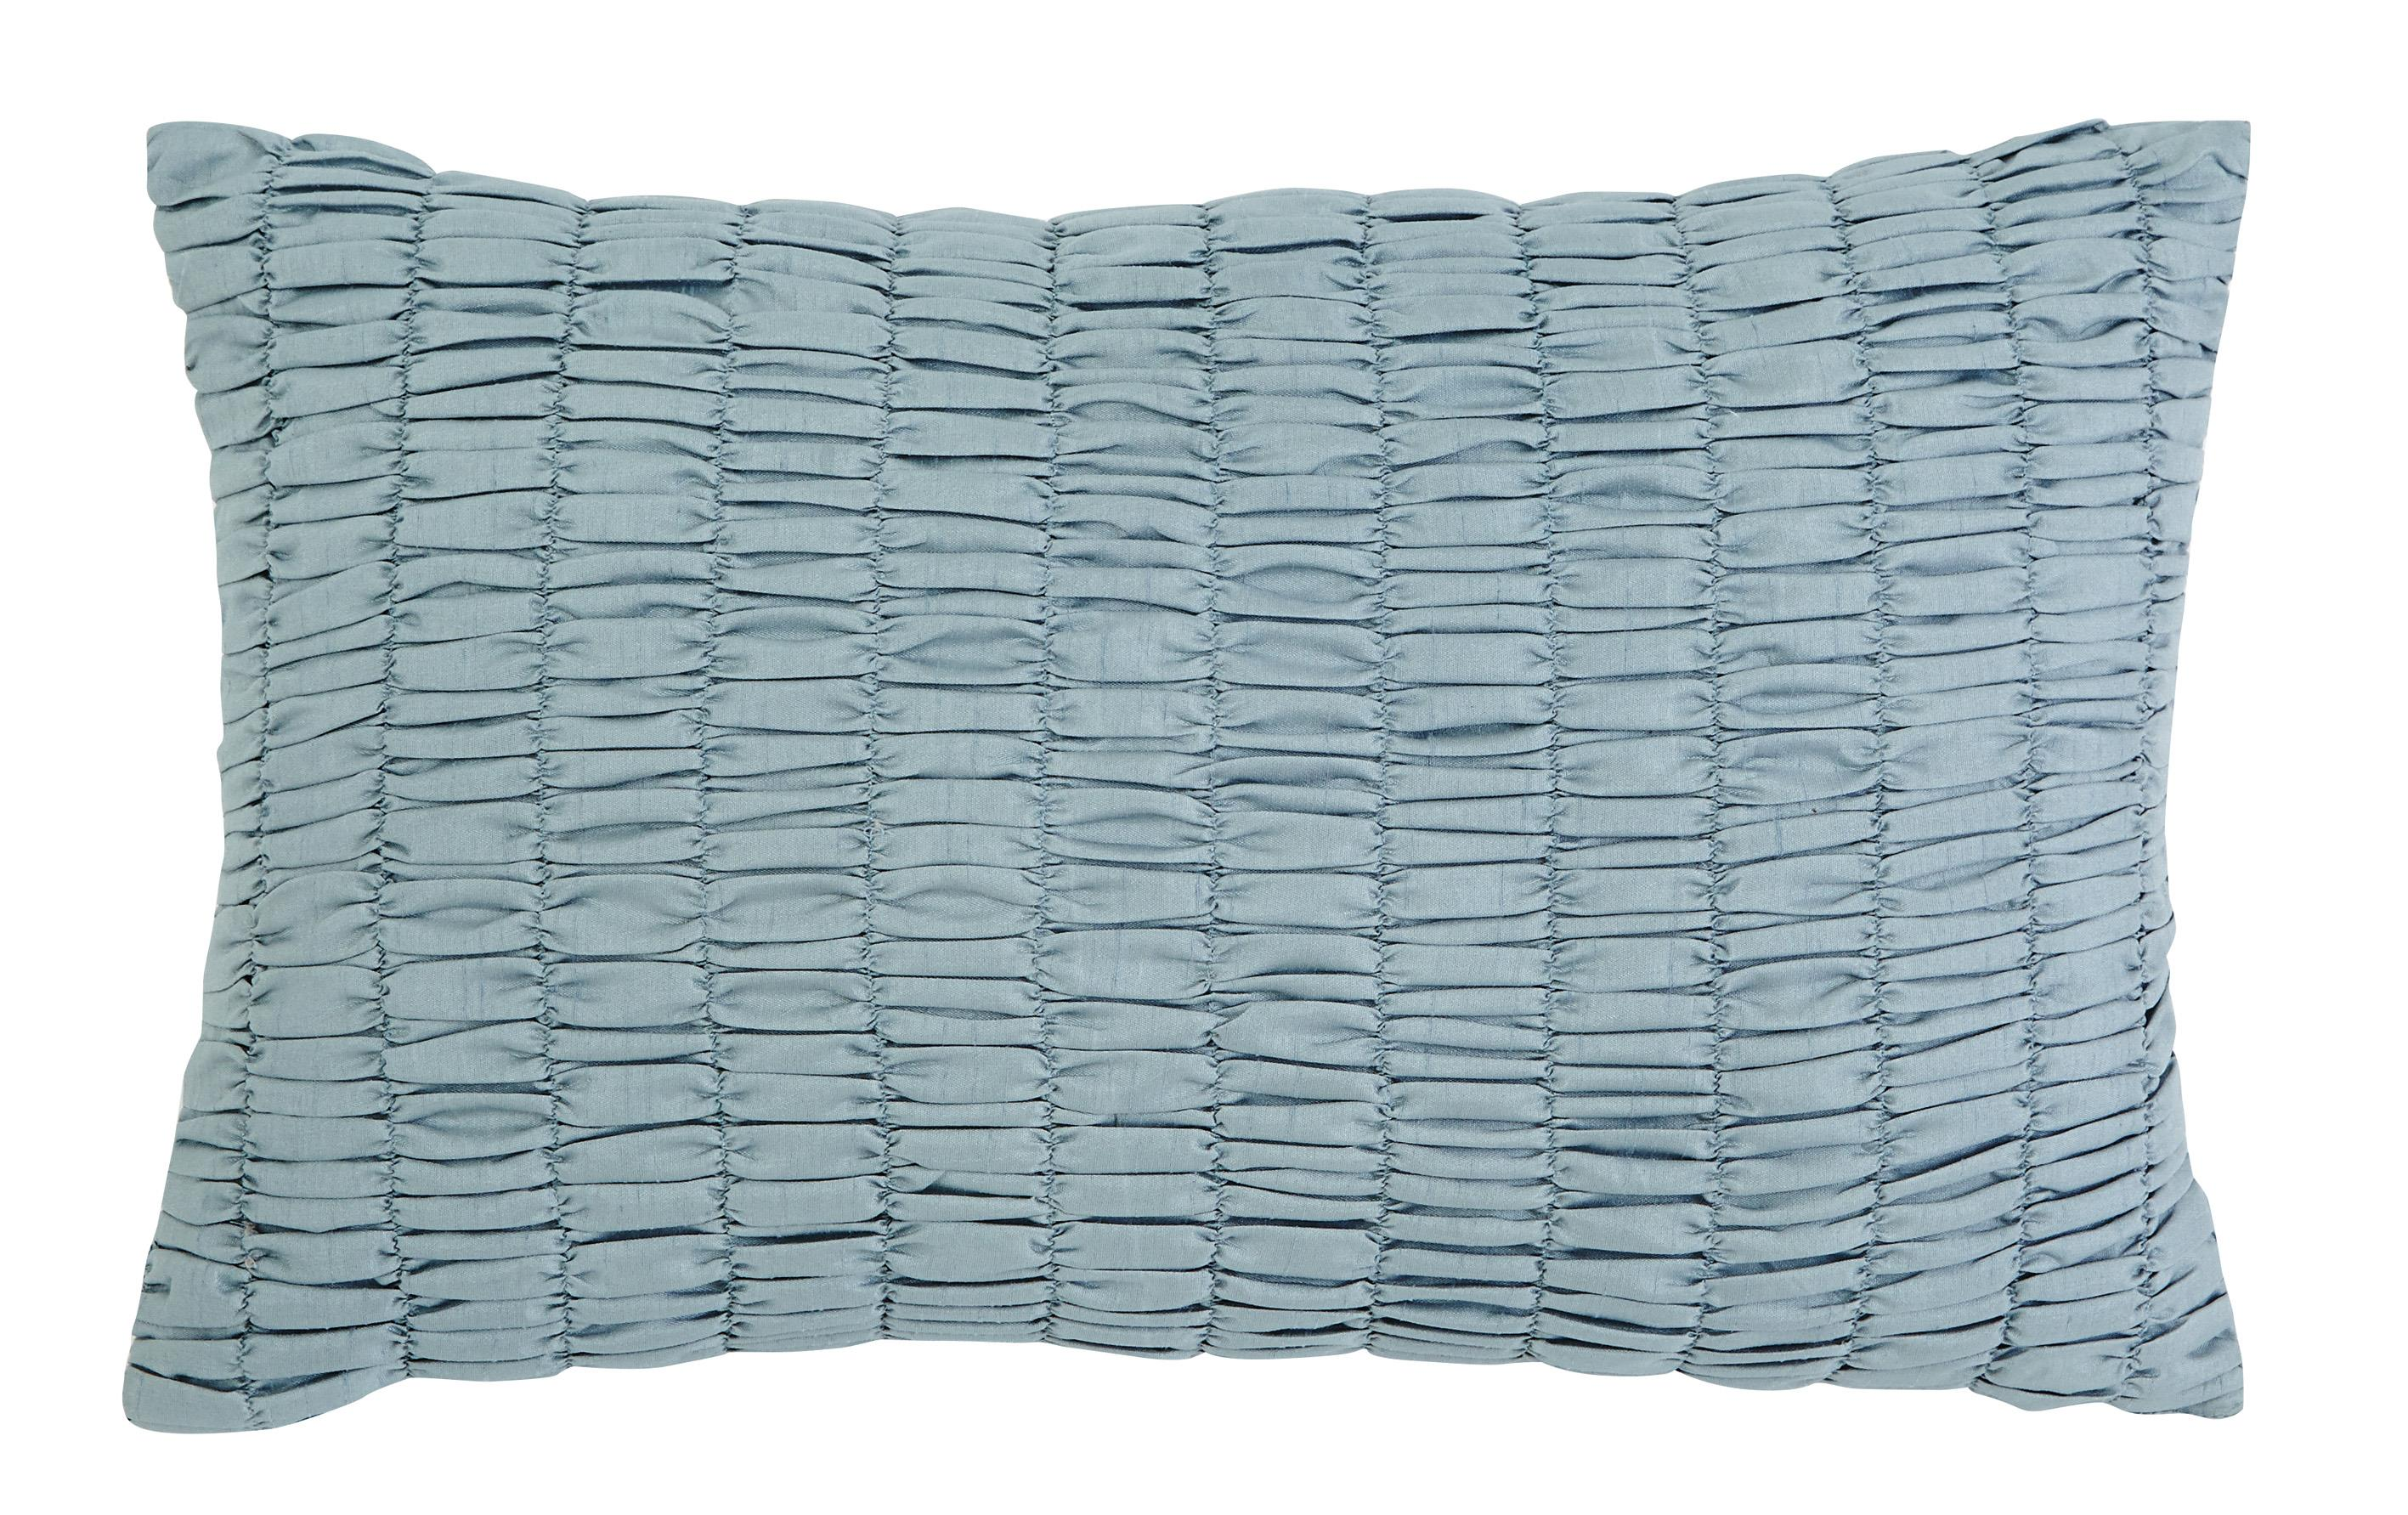 Signature Design by Ashley Pillows Stitched - Sky Blue Lumbar Pillow - Item Number: A1000296P